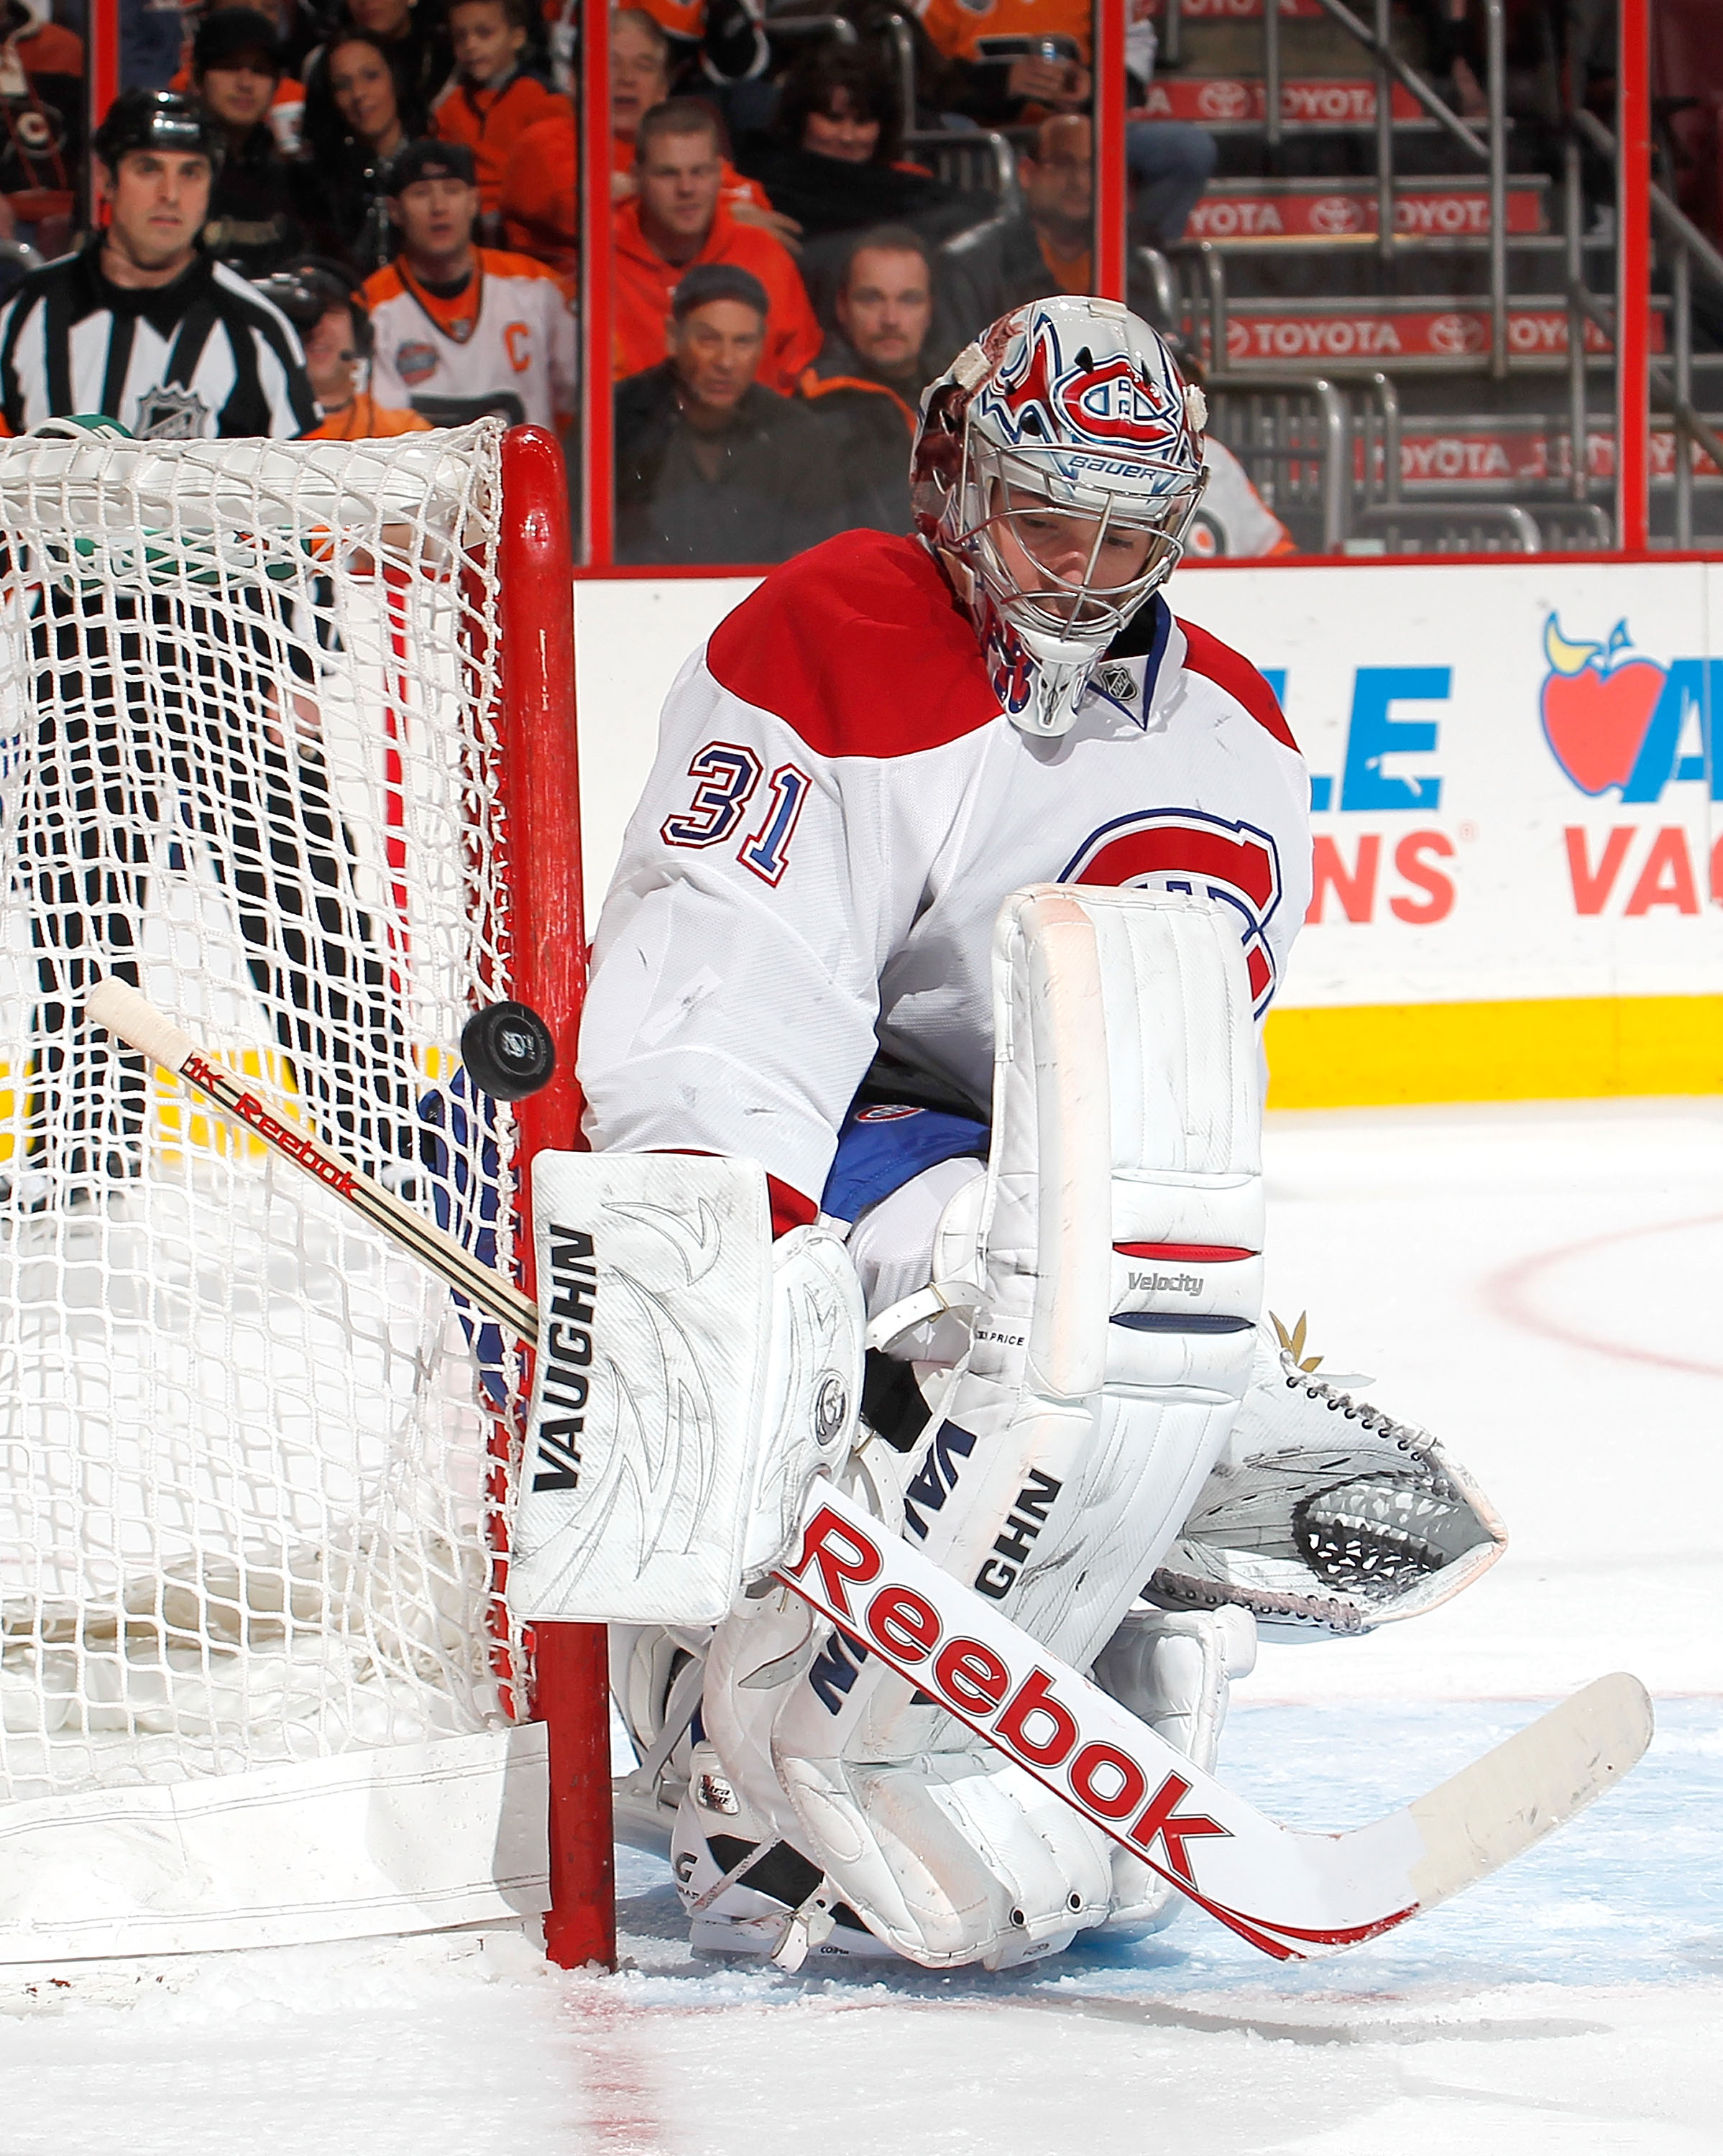 PHILADELPHIA, PA - JANUARY 25:  Goalie Carey Price #31 of the Montreal Canadiens makes a save in an NHL hockey game against the Philadelphia Flyers at the Wells Fargo Center on January 25, 2011 in Philadelphia, Pennsylvania.  (Photo by Paul Bereswill/Gett